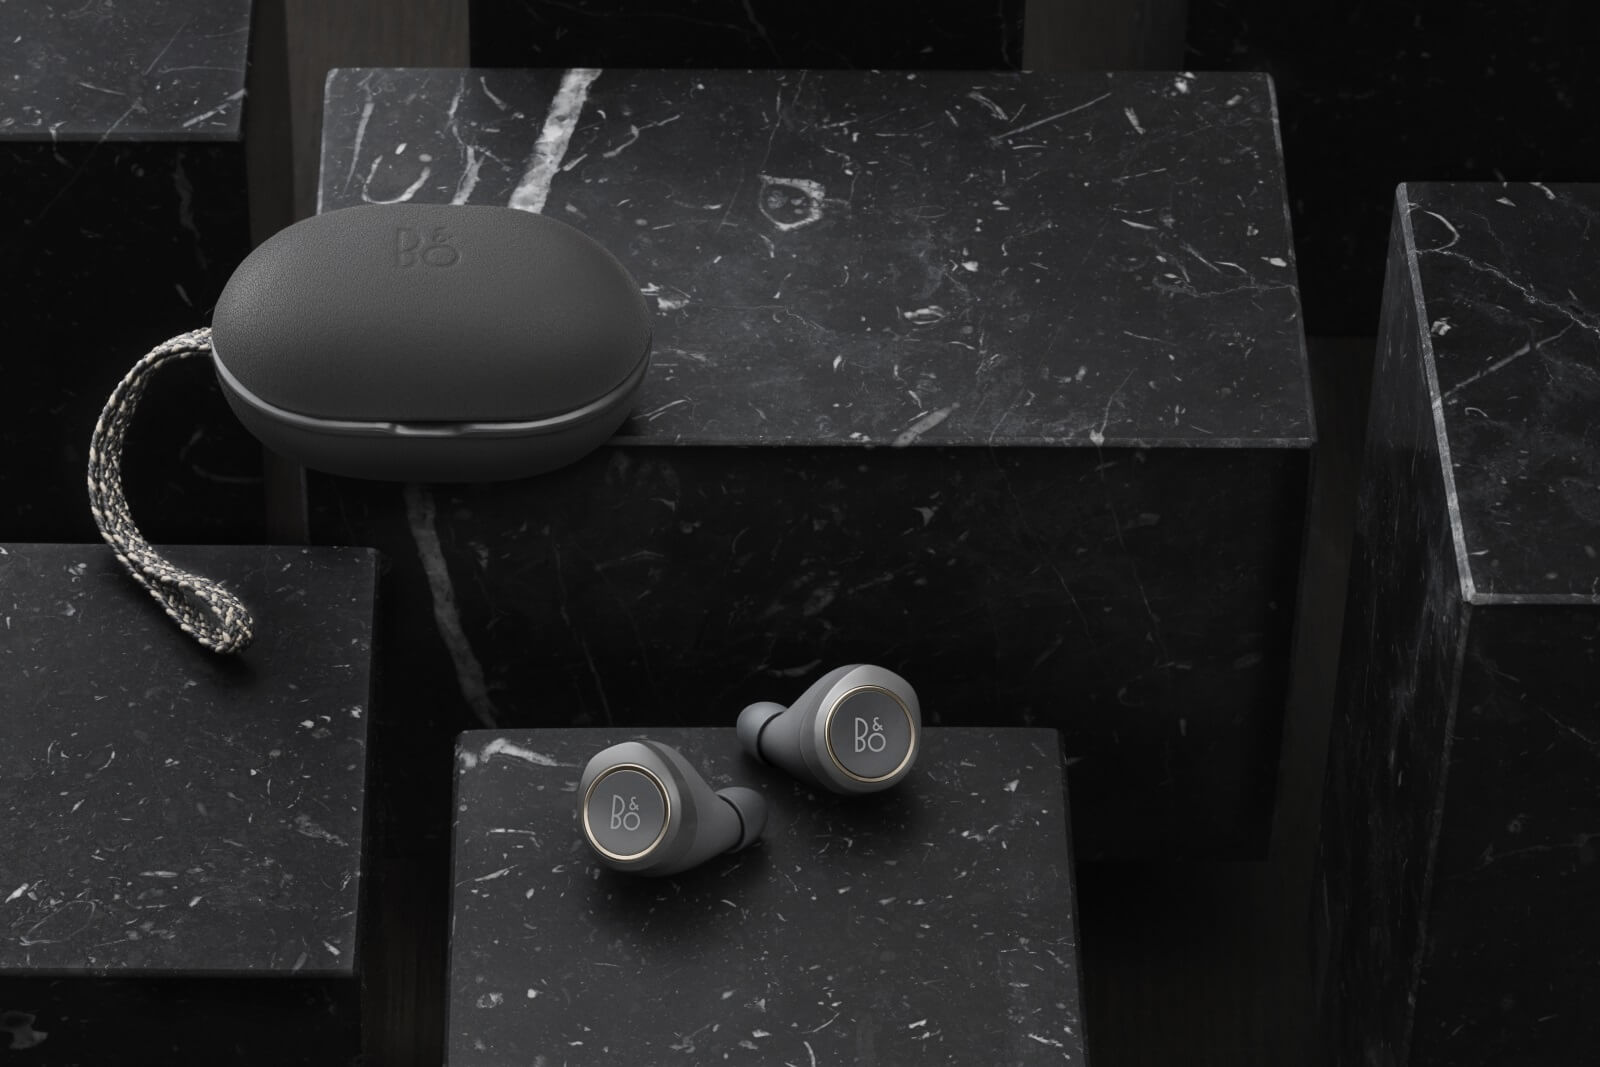 BeoPlay E8 - headphones with innovative Active Noise Cancellation and transparency mode.